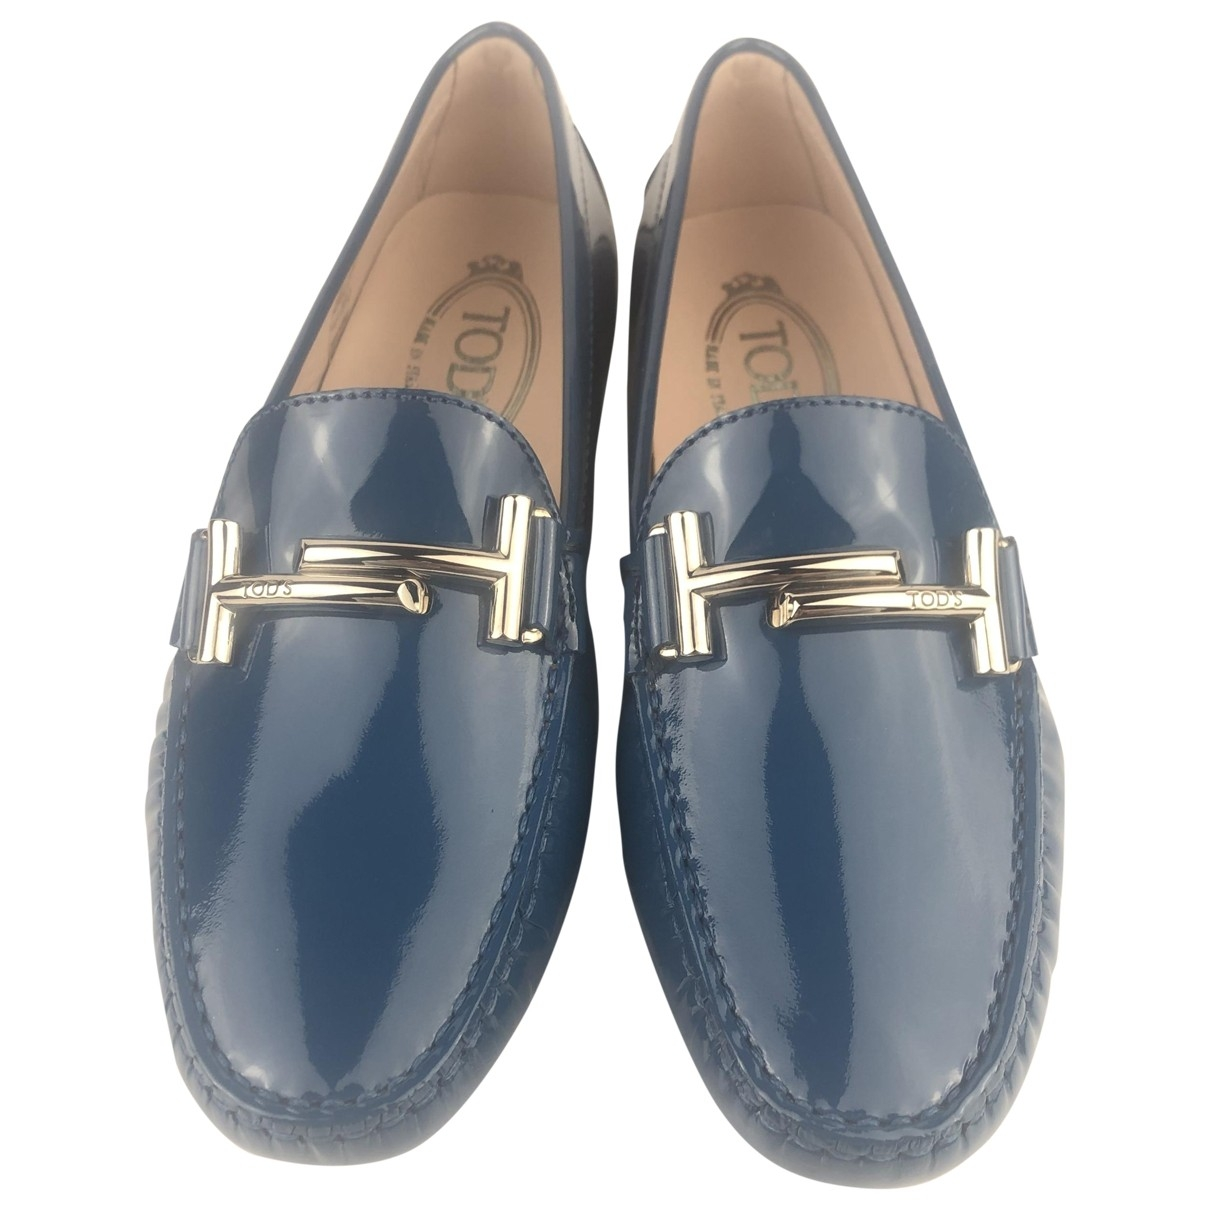 Tod's \N Blue Patent leather Flats for Women 37 EU